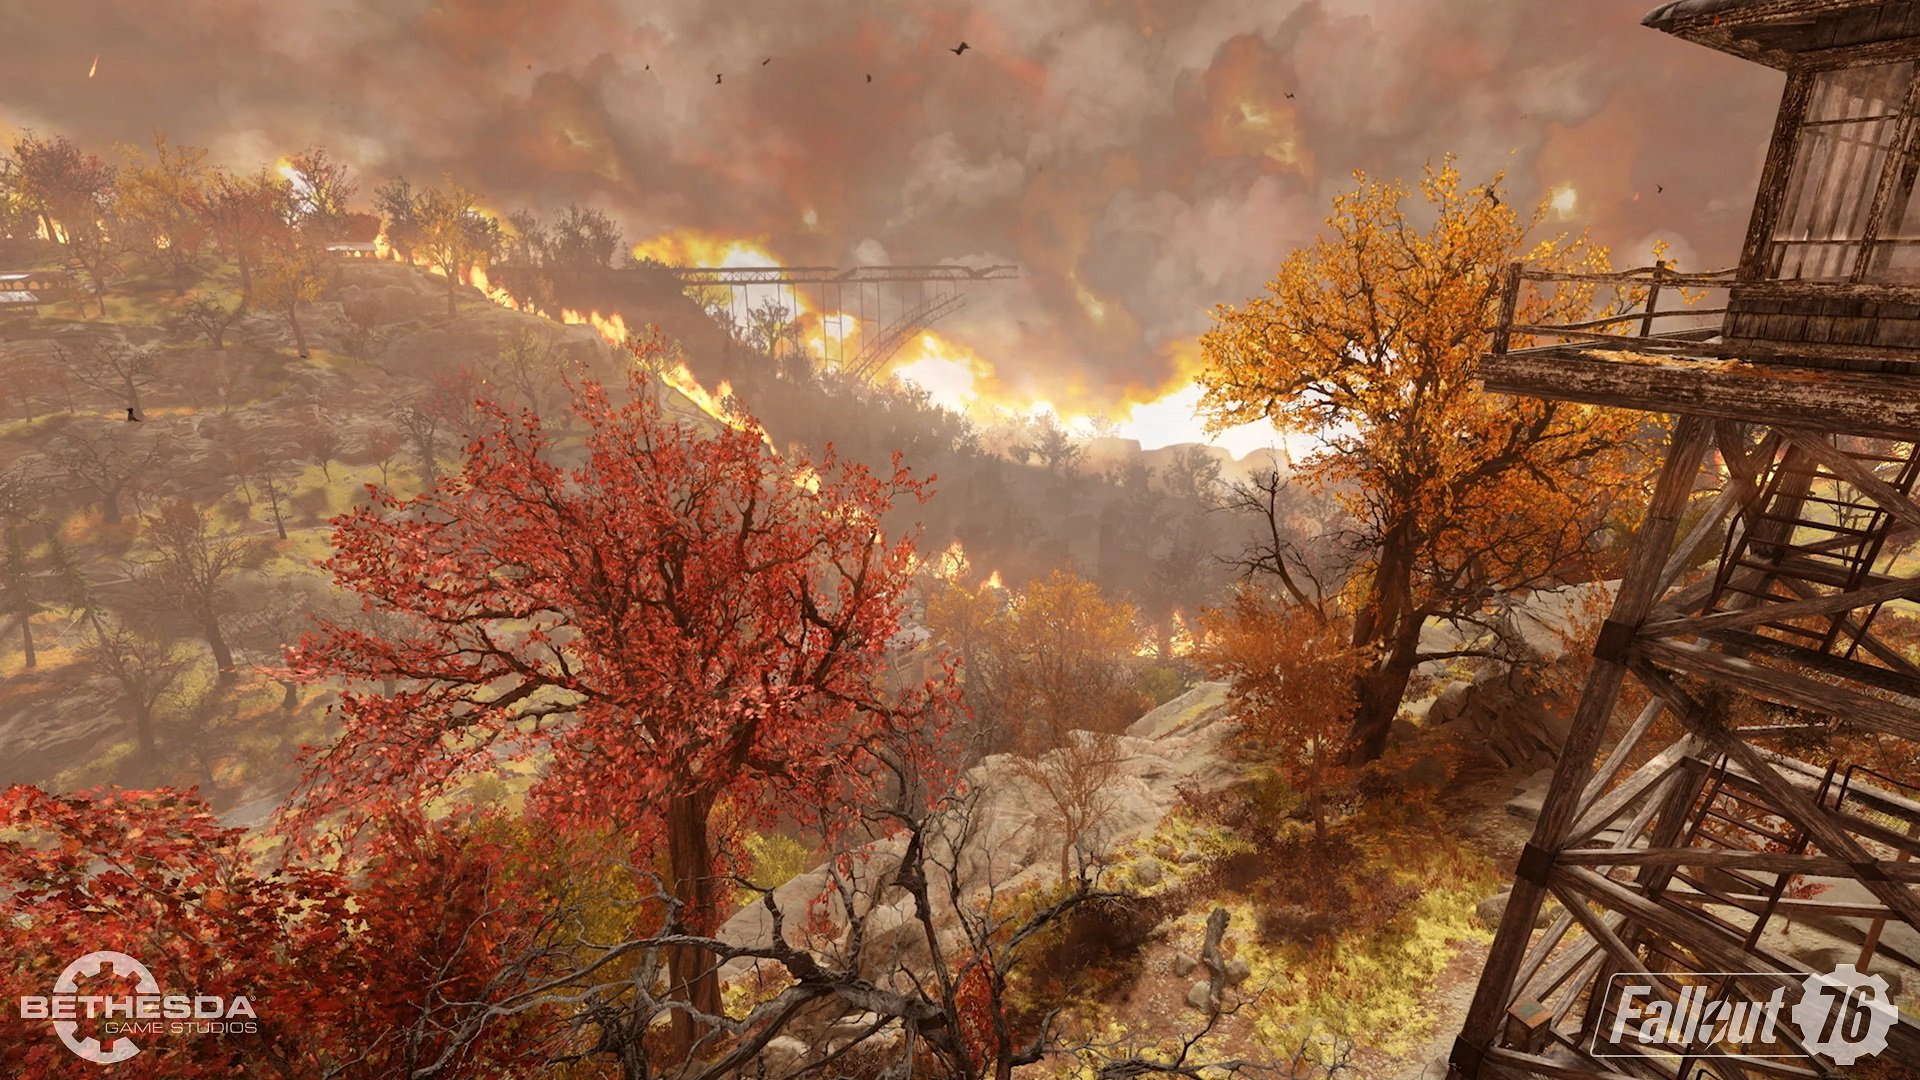 Bethesda wants to add Fallout 76 DLC that leaves the main West Virginia map